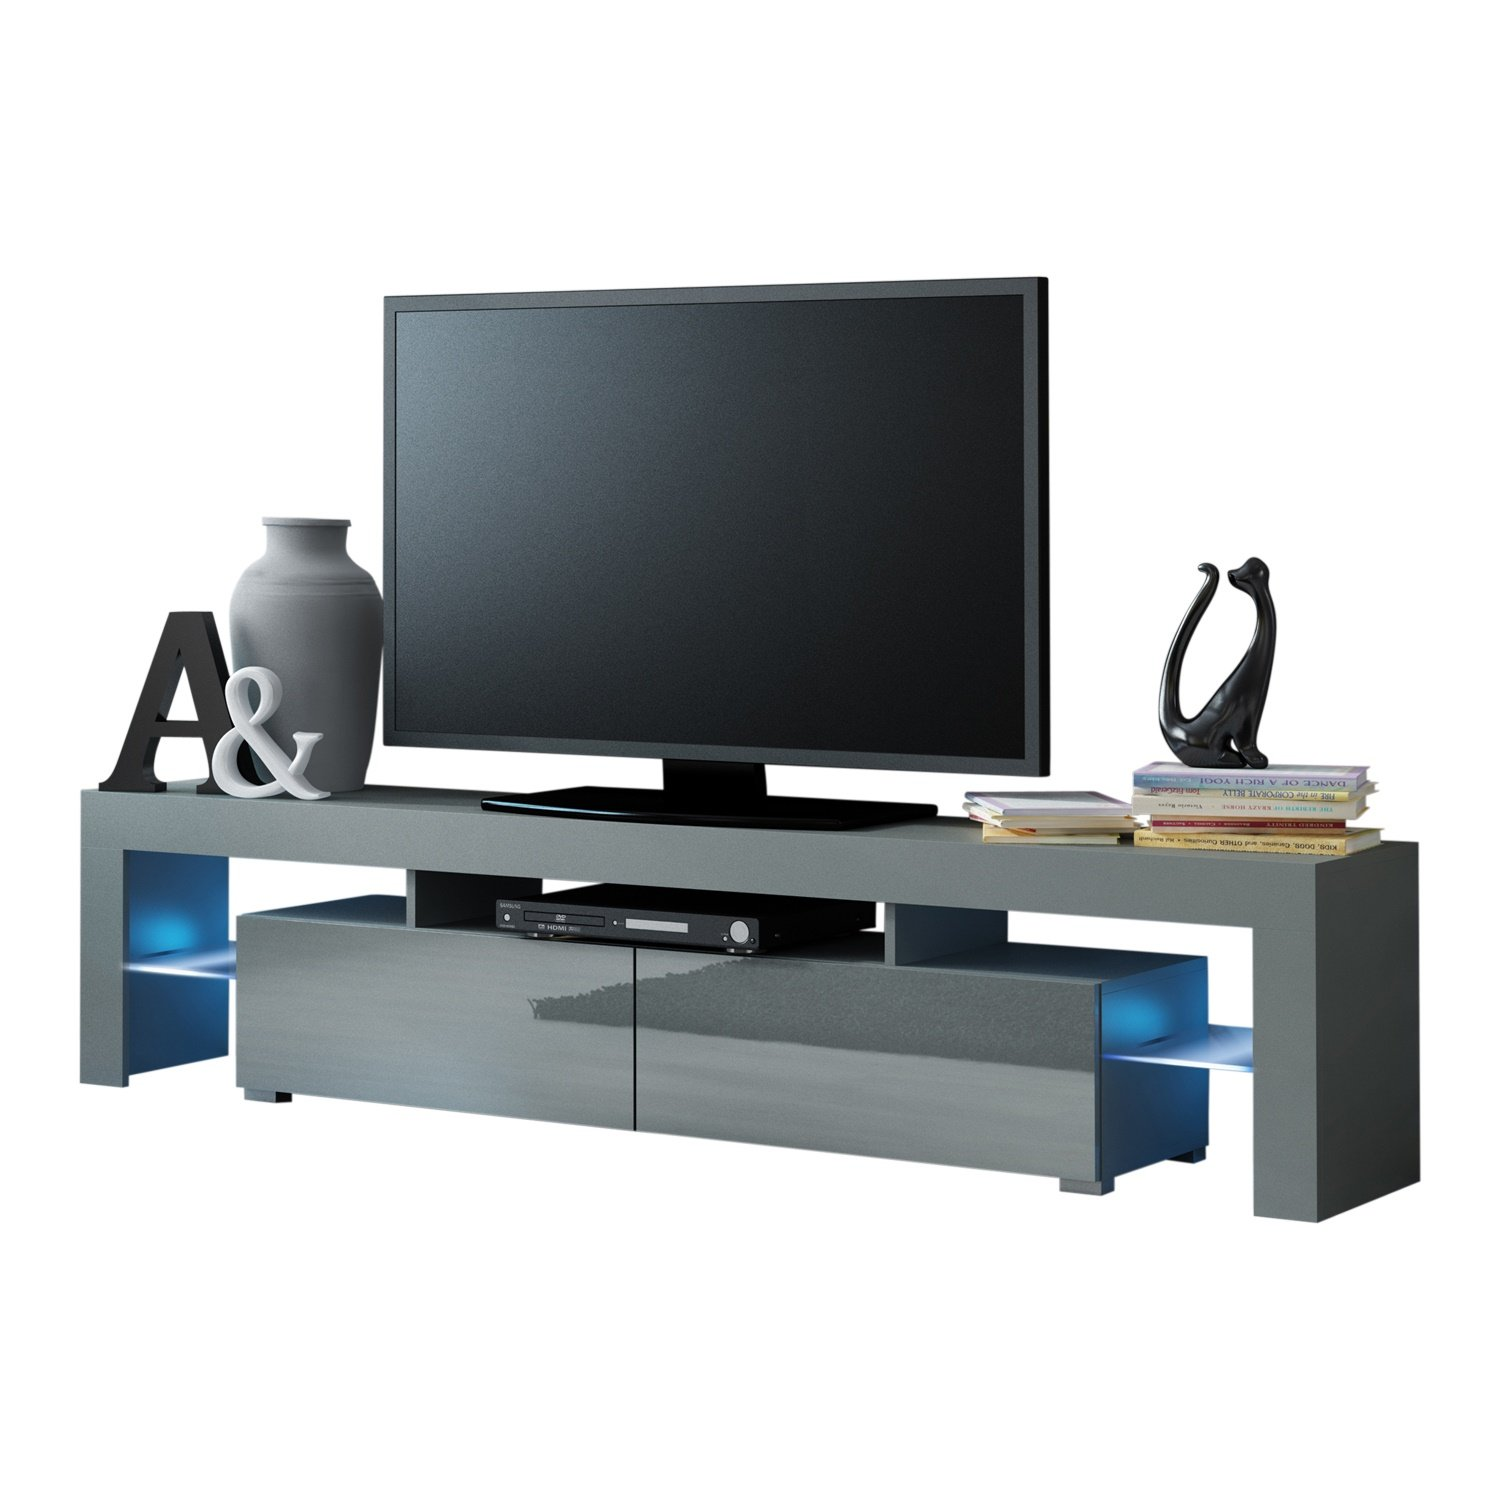 Amazon.com: TV Stand Solo 200 Modern LED TV Cabinet / Living Room ...